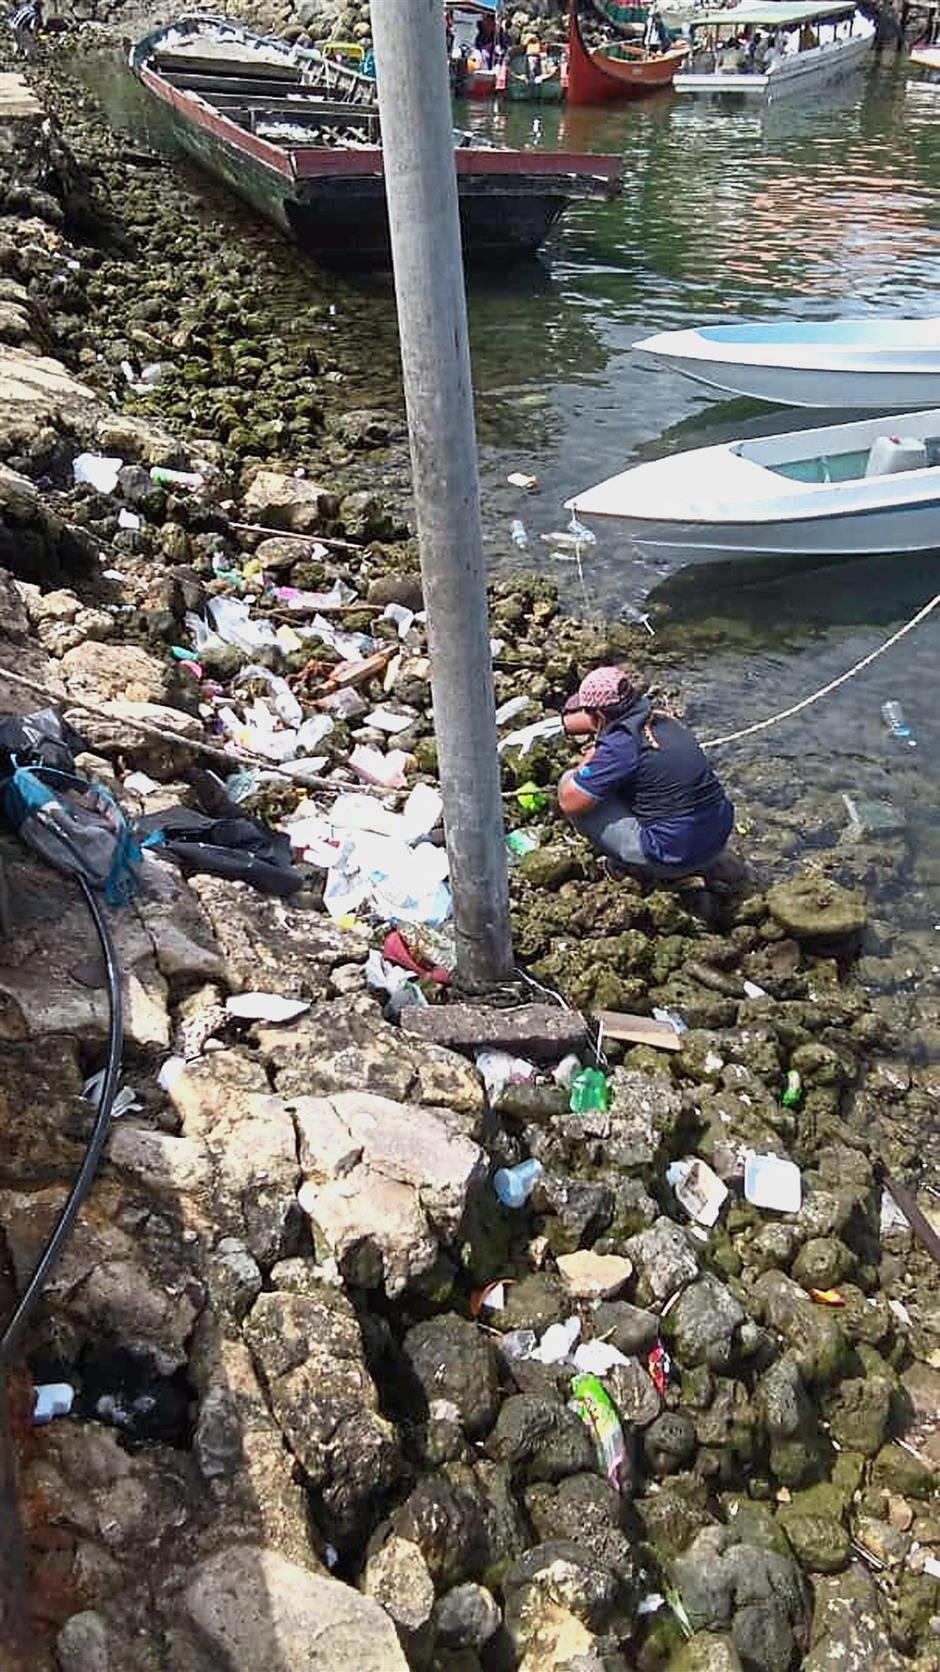 Cleaning the filth: A cleaner picking litter of plastics and other rubbish in Semporna during a campaign to clean the town over the past week.